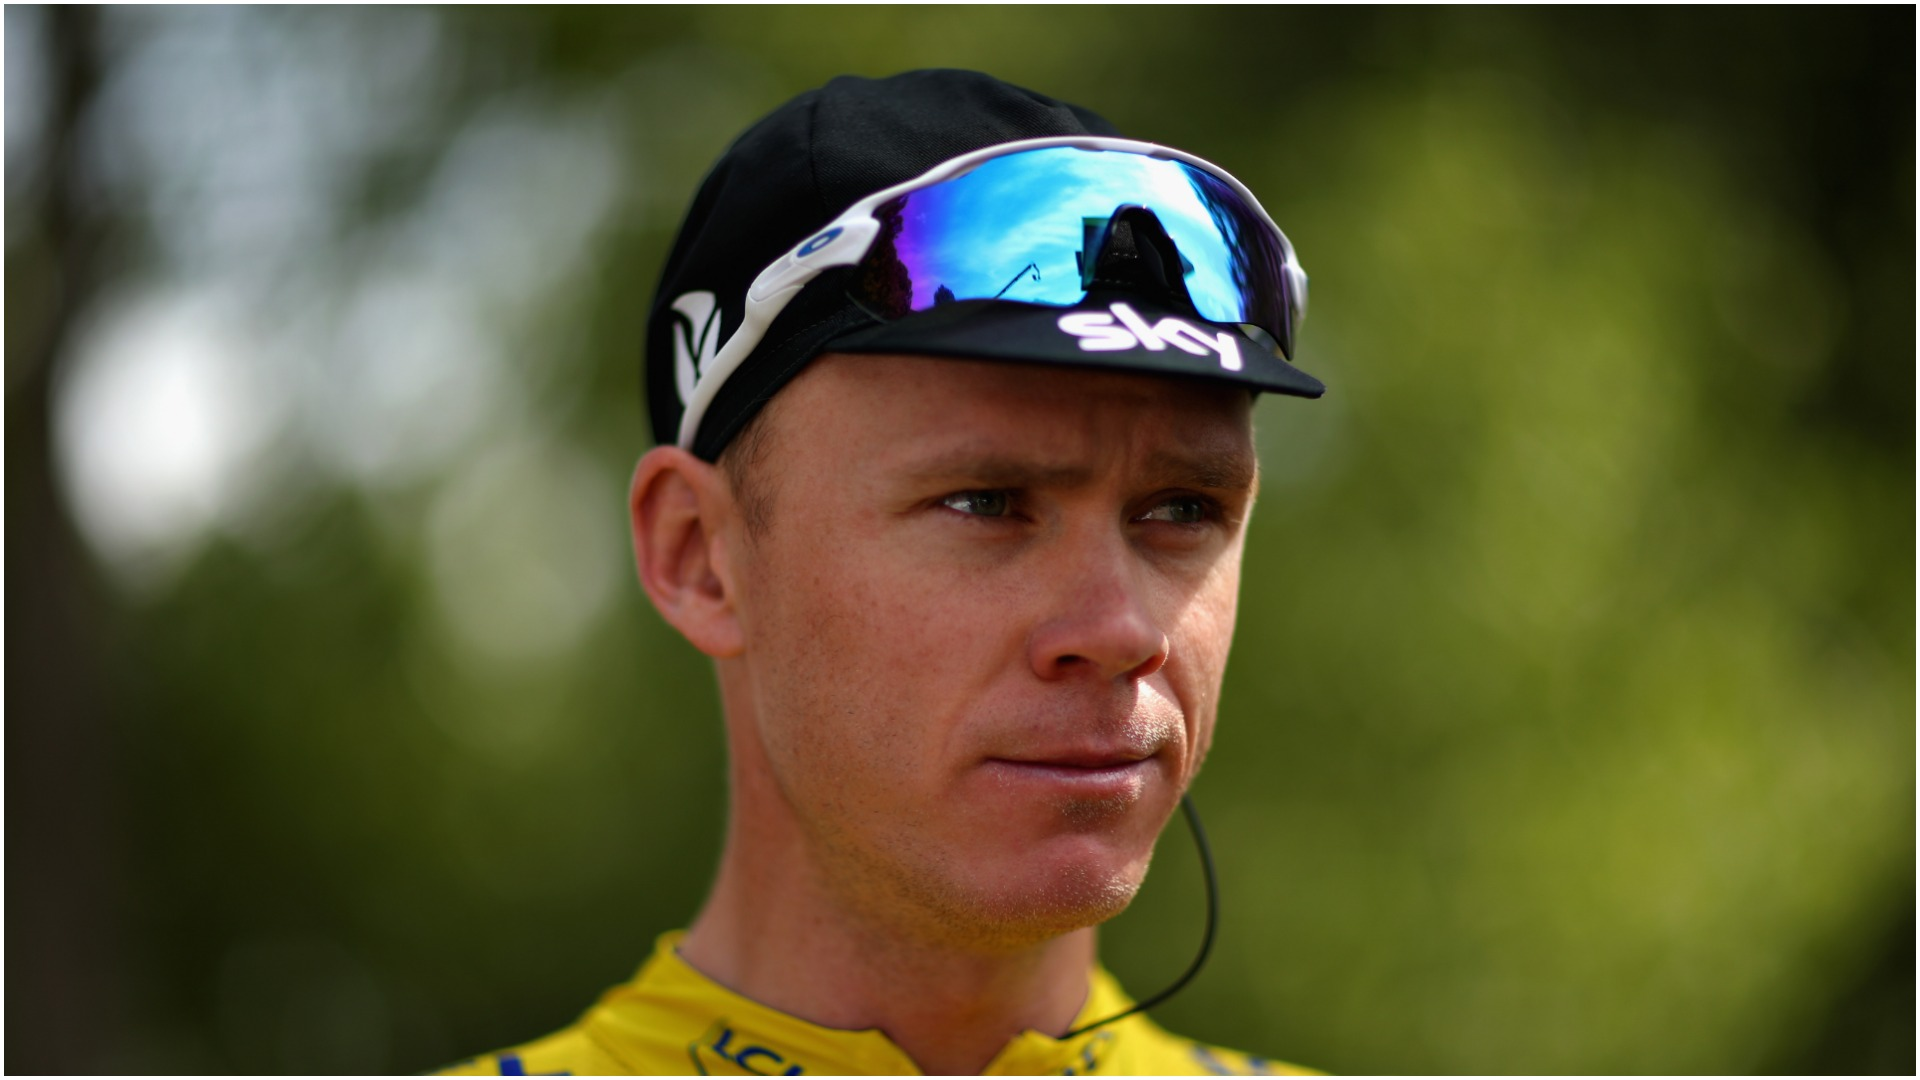 Four-time Tour de France champion Chris Froome will not contest the race in 2019 following a crash on Wednesday.